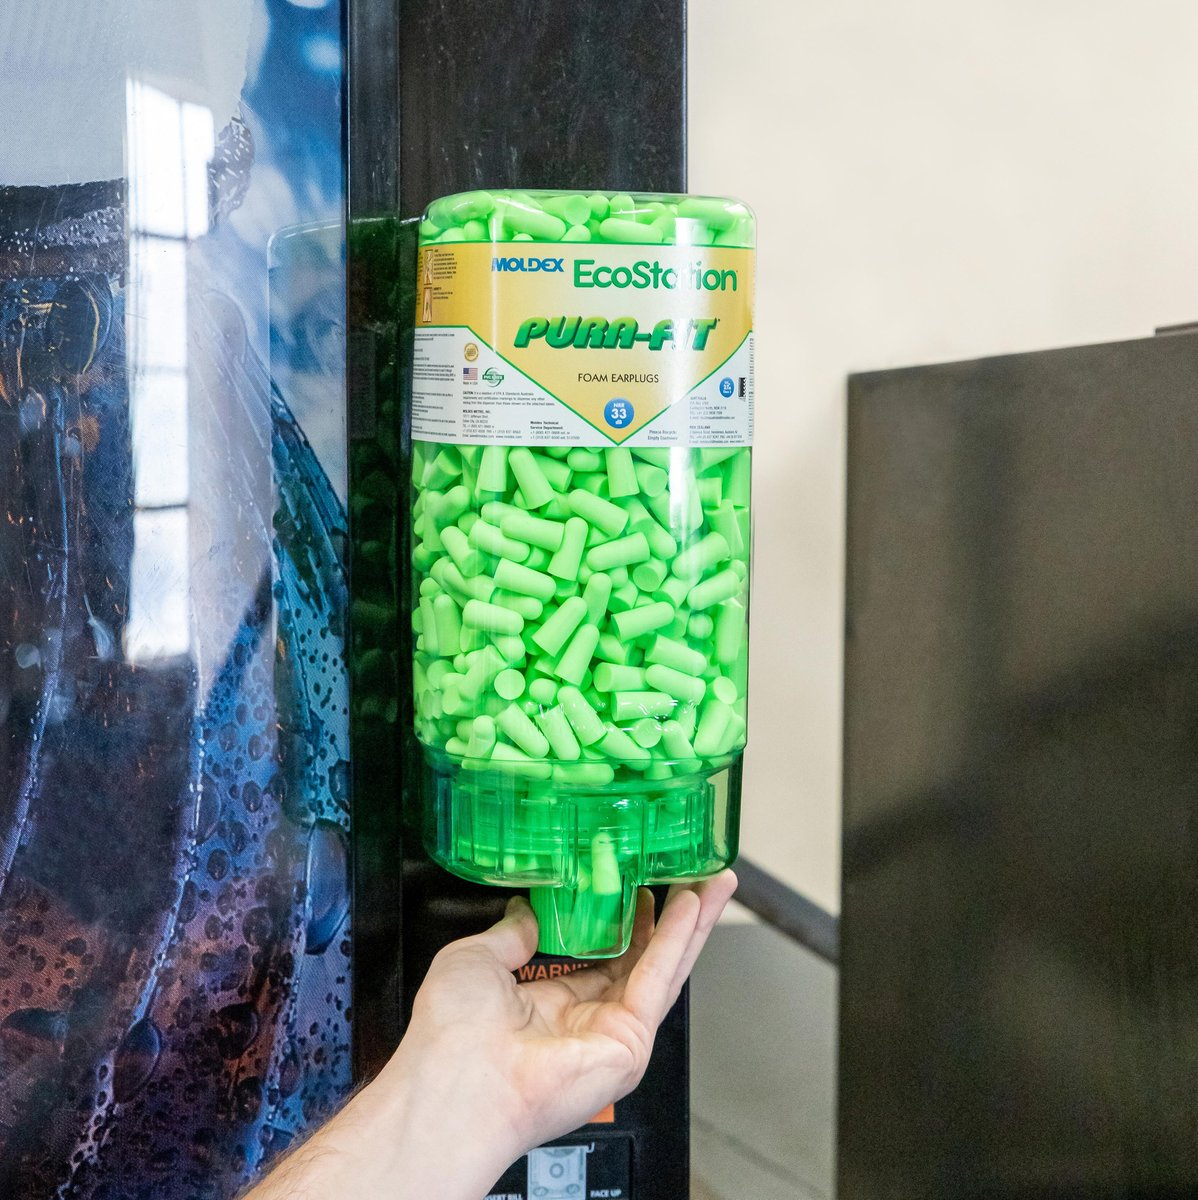 EcoStation™ Earplug Dispenser — Convenient, quick access and ease of use for more compliance. Plus, workers take only one pair at a time, so there is less waste. Less waste means more cost savings. Lower cost per pair than packaged earplugs.   Request a free trial today! #moldex<br>http://pic.twitter.com/enjDZslSbi